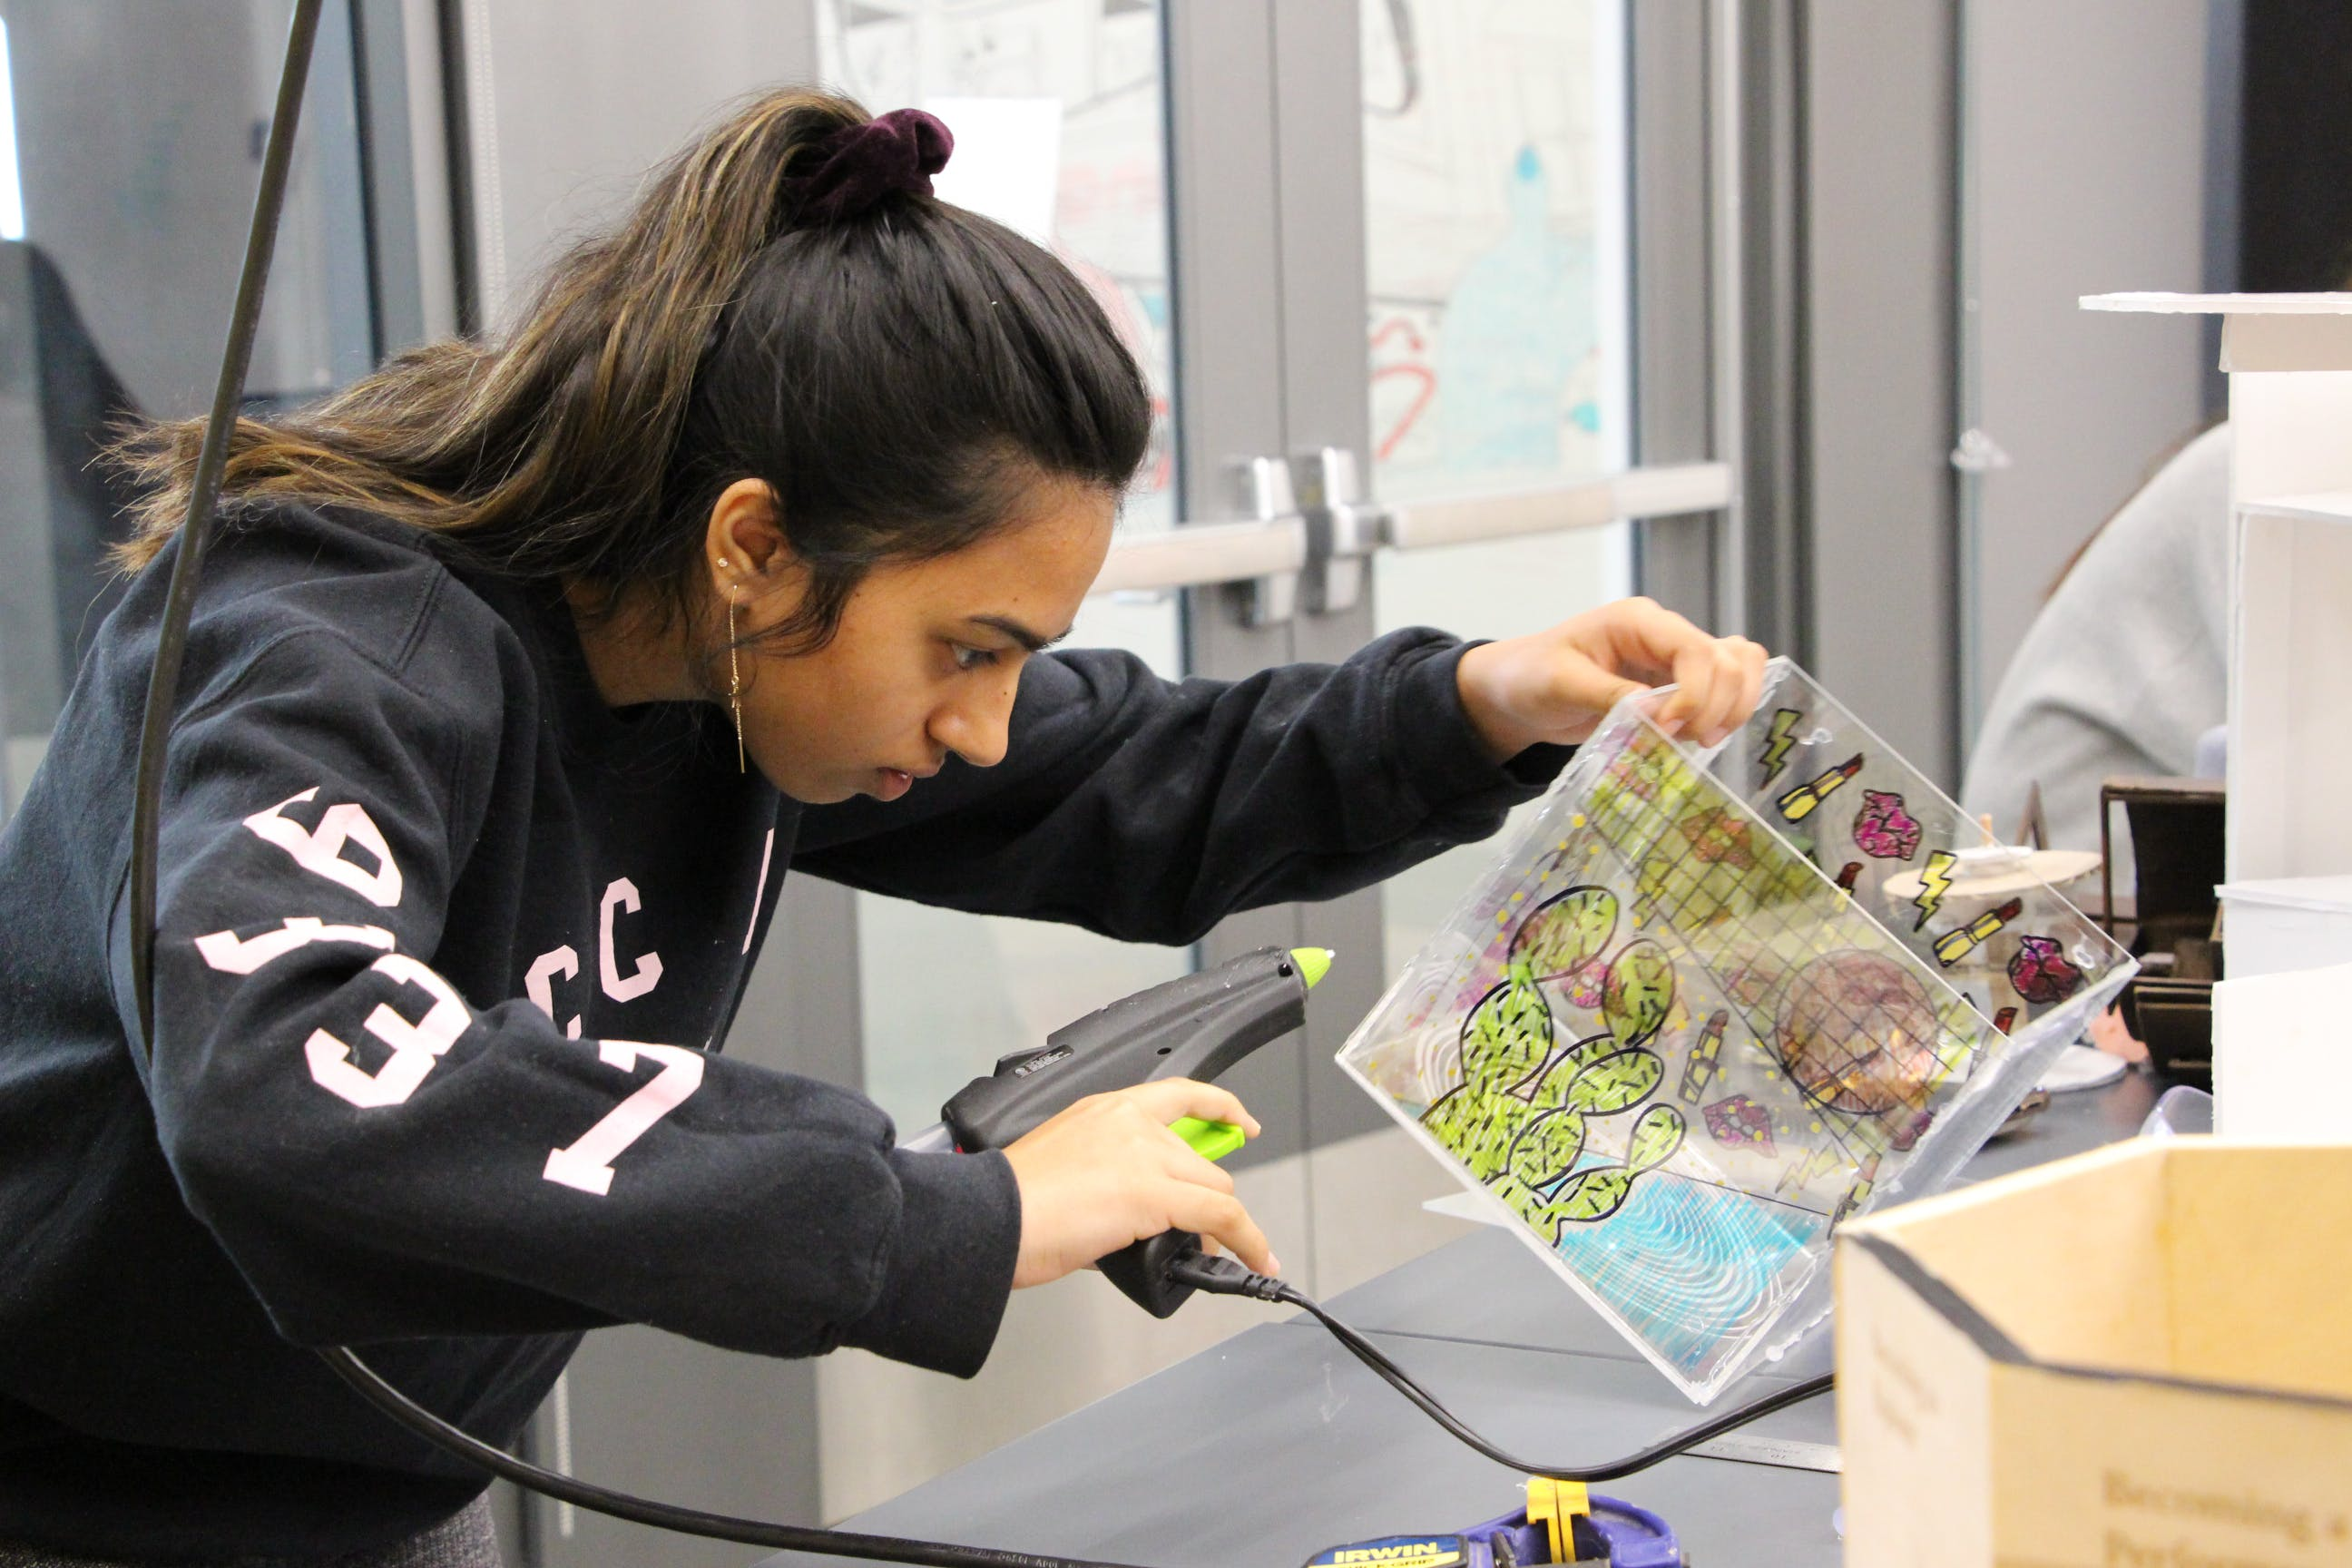 A student making art using a clear box